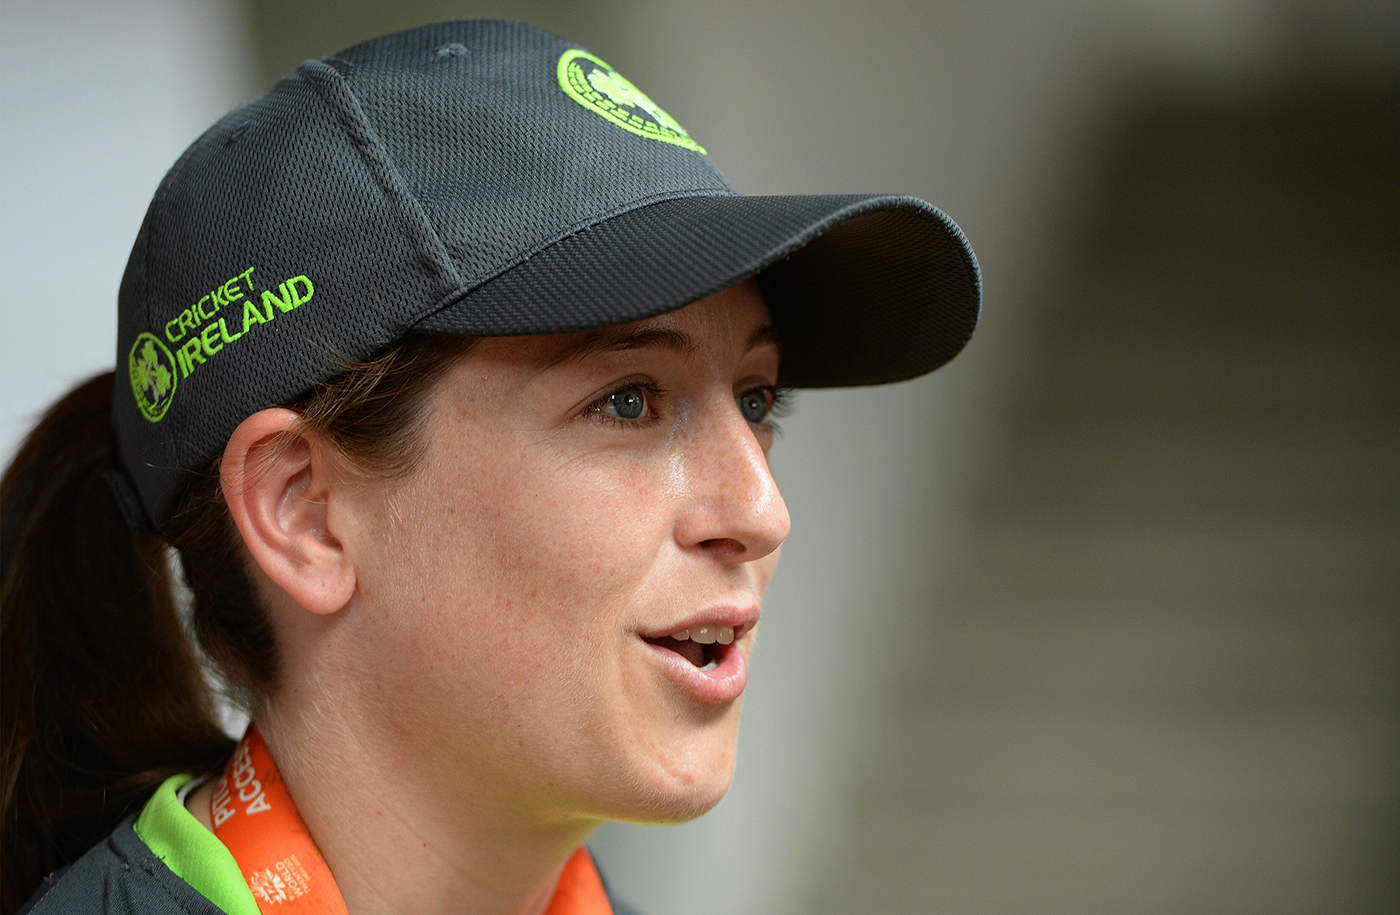 Isobel Joyce, the 17-year-old Player of the Match on Test debut, went on to captain Ireland in the limited-overs formats